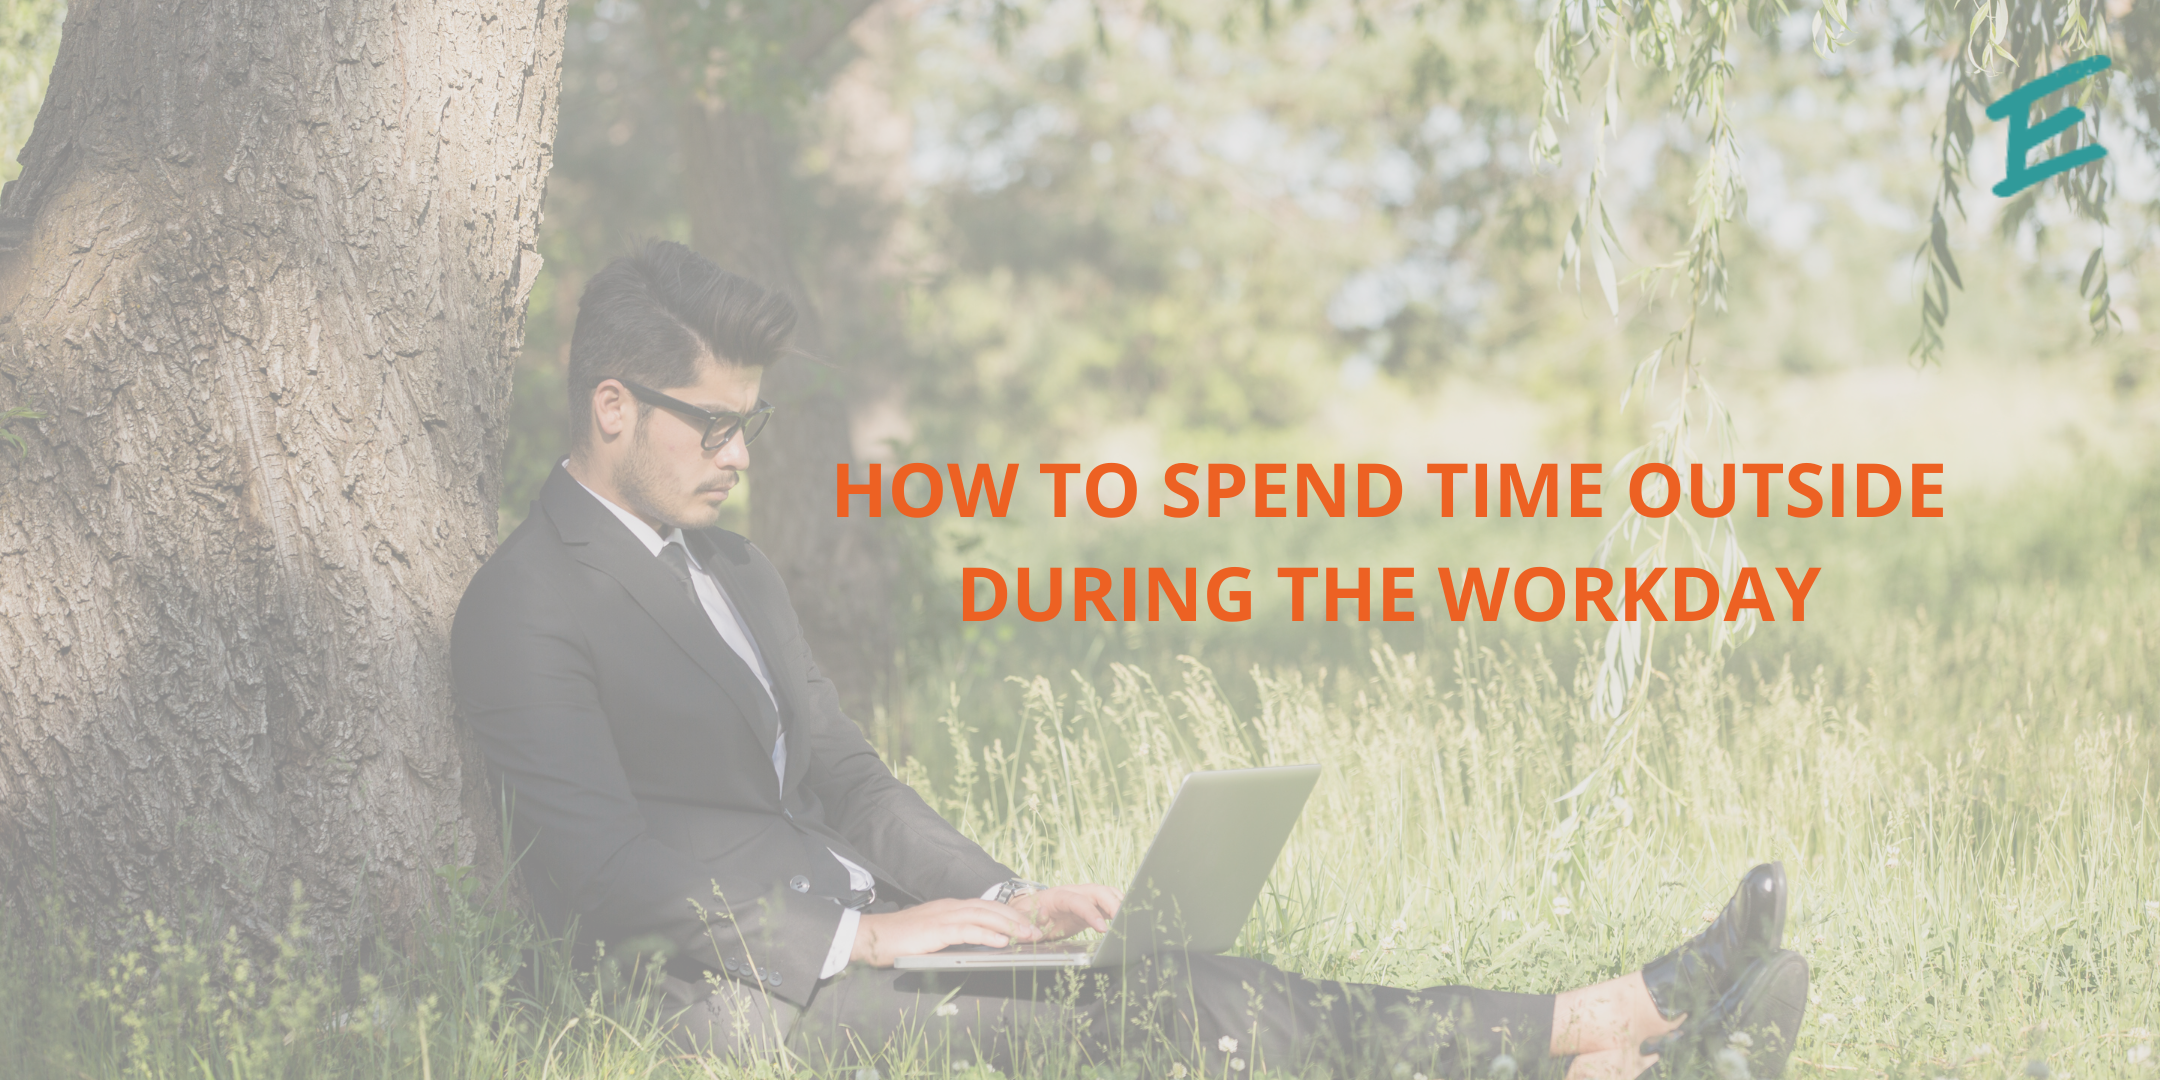 how-to-spend-time-outside-during-the-workday